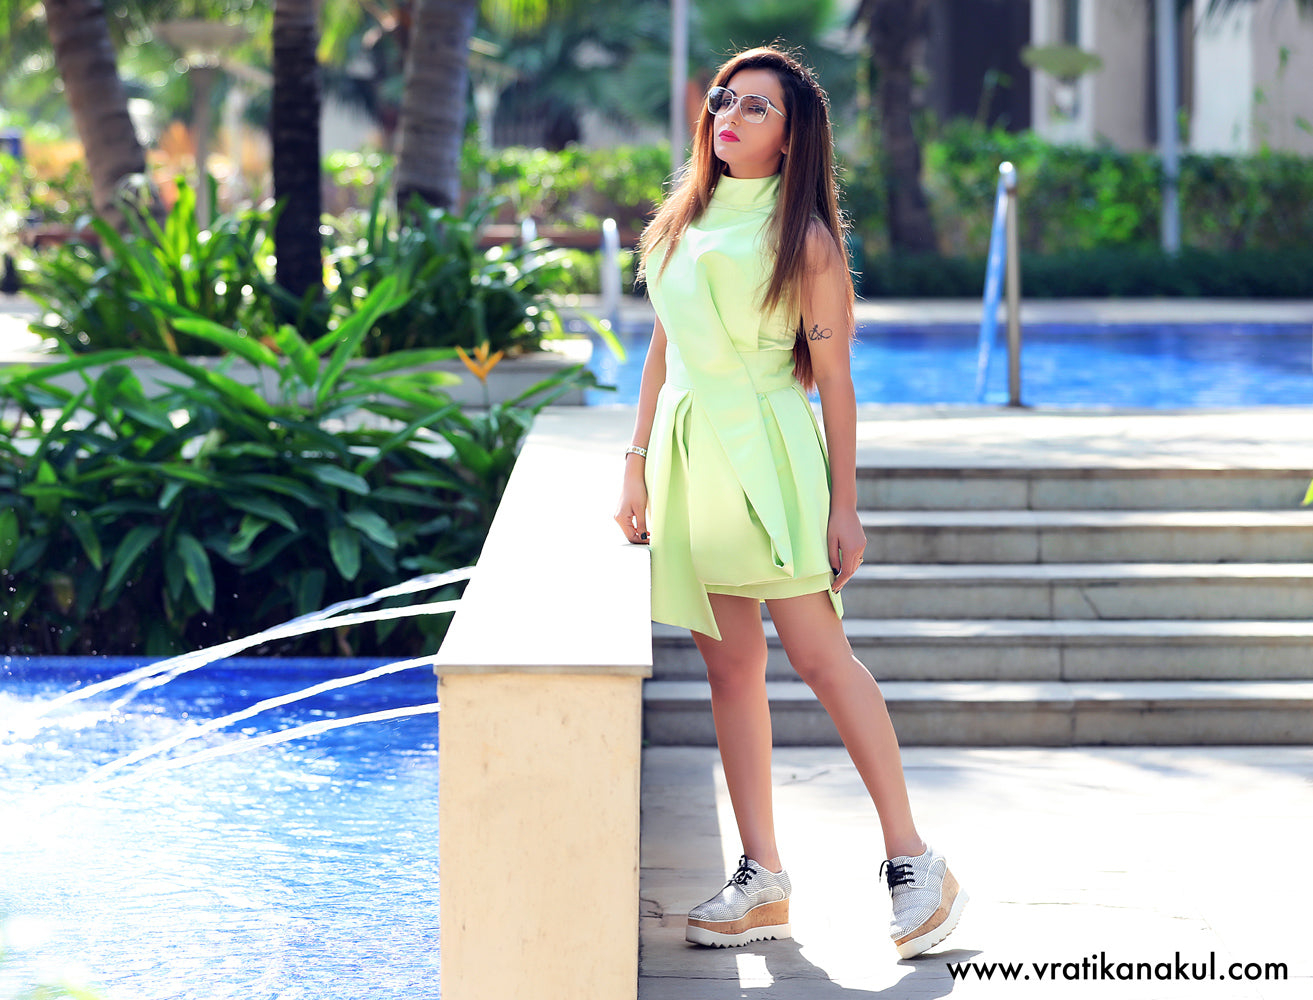 Structured Green Bow Dress - Western - vratikanakul.com